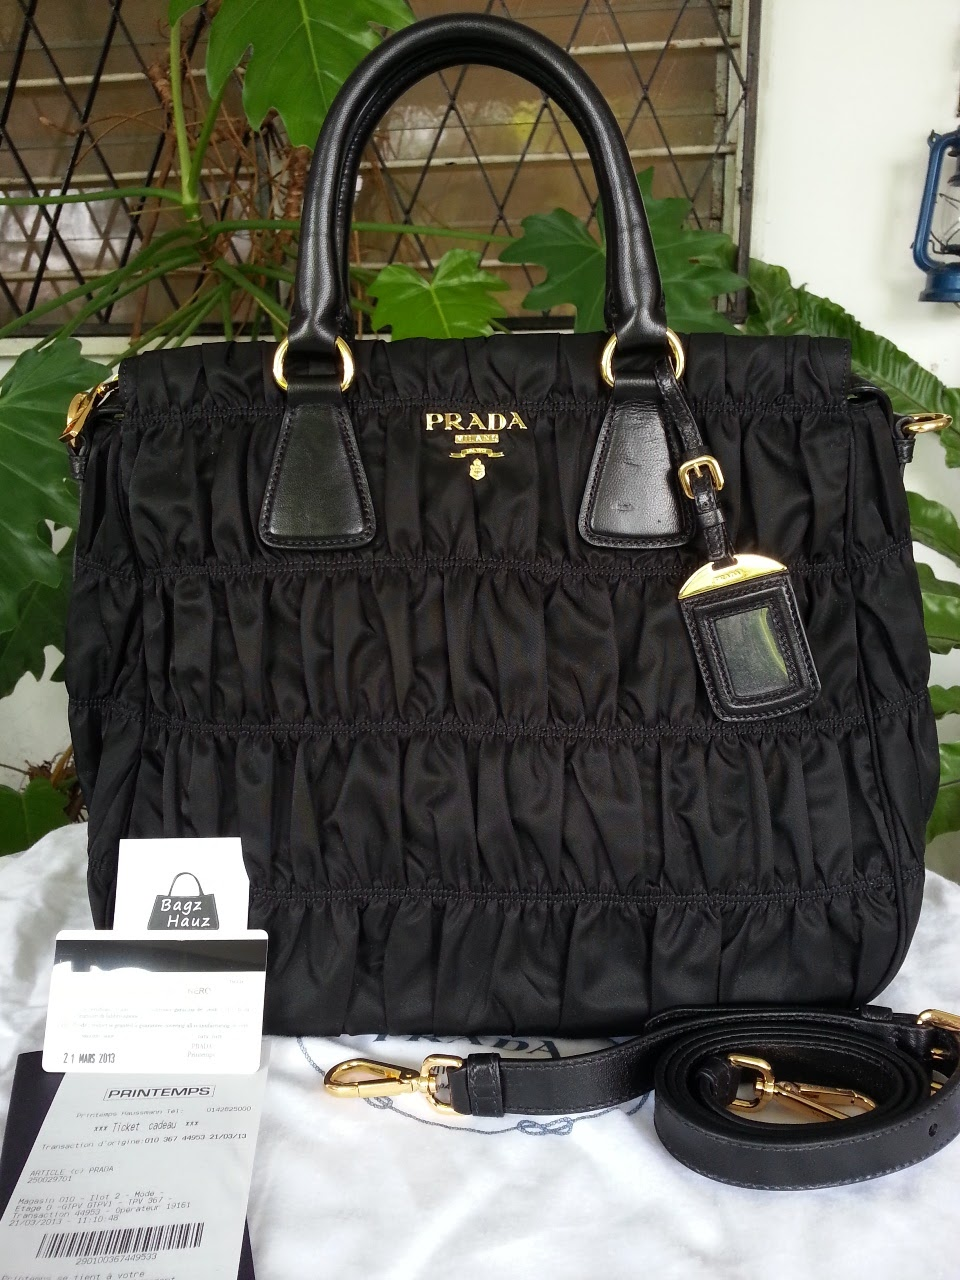 2356b5f309e5 ... discount code for prada b1336m nylon gaufre tote color black sold with  542ab e0119